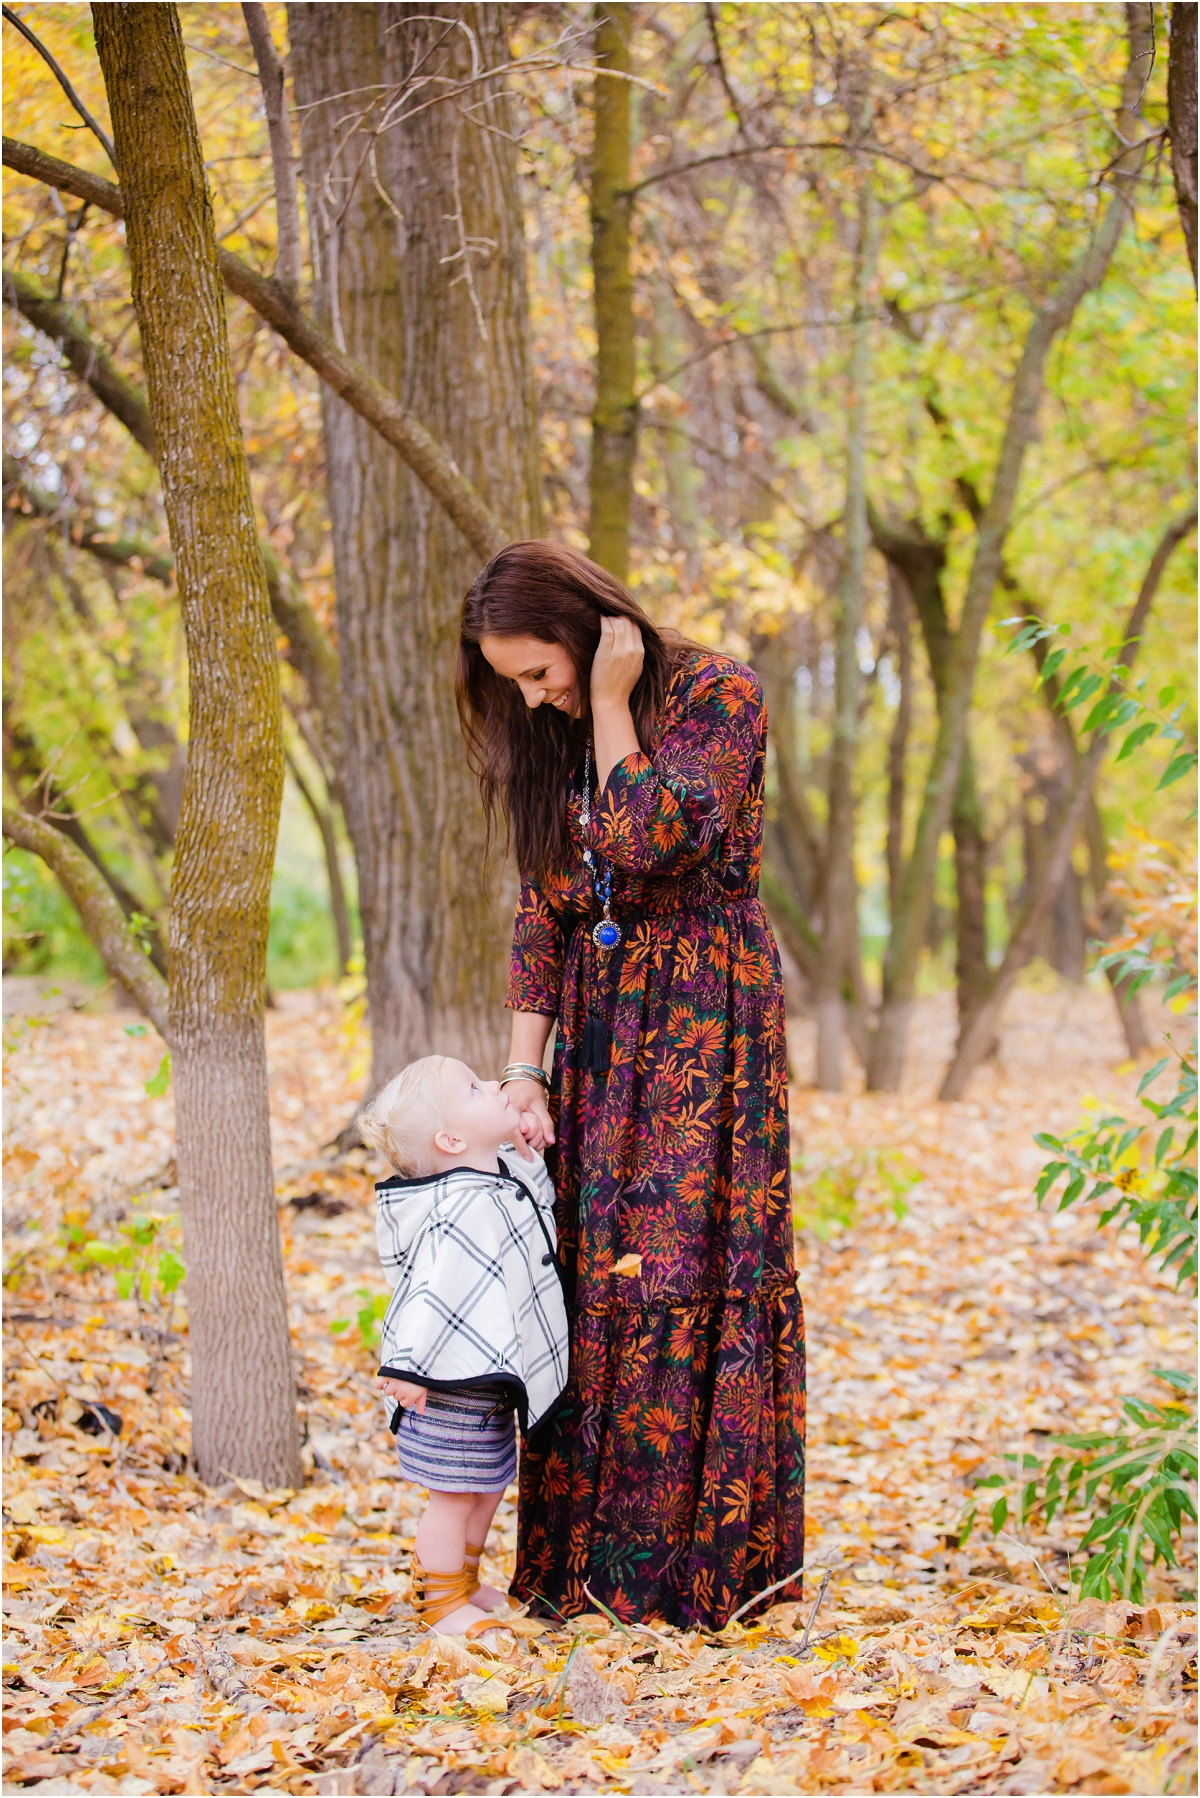 Terra Cooper Photography Utah Family Photography_5105.jpg